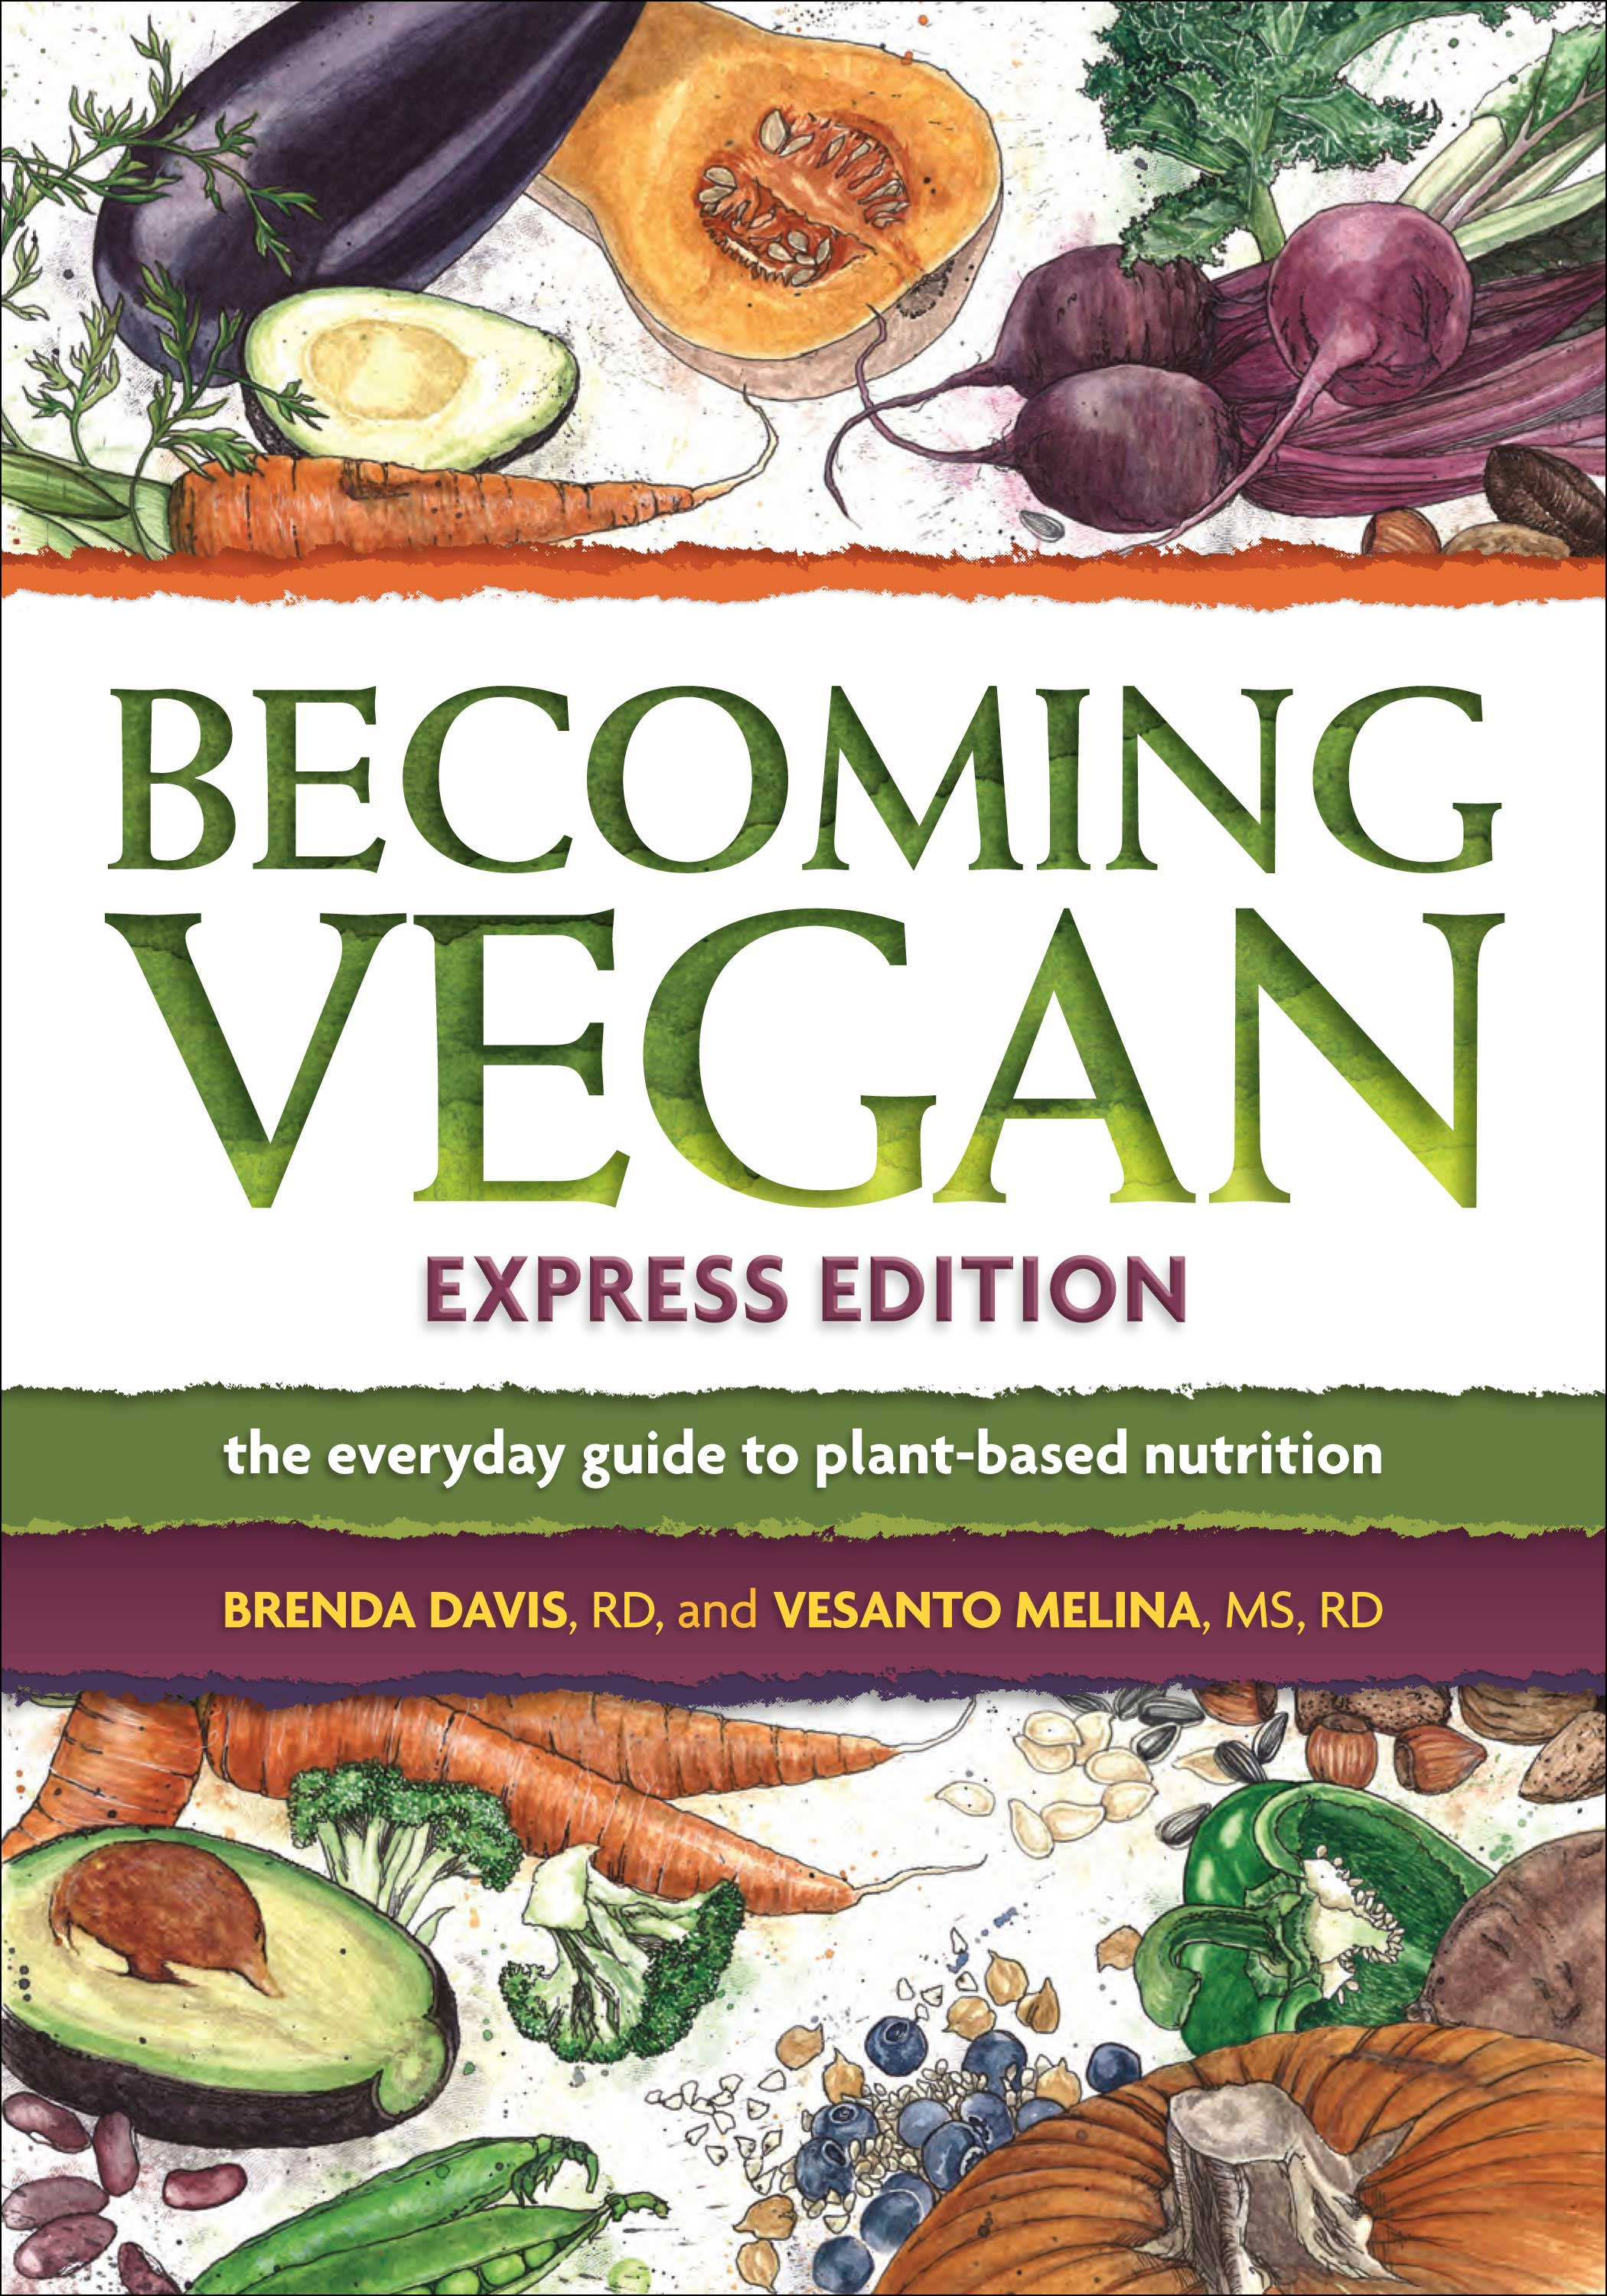 Becoming-Vegan-Express-Edition